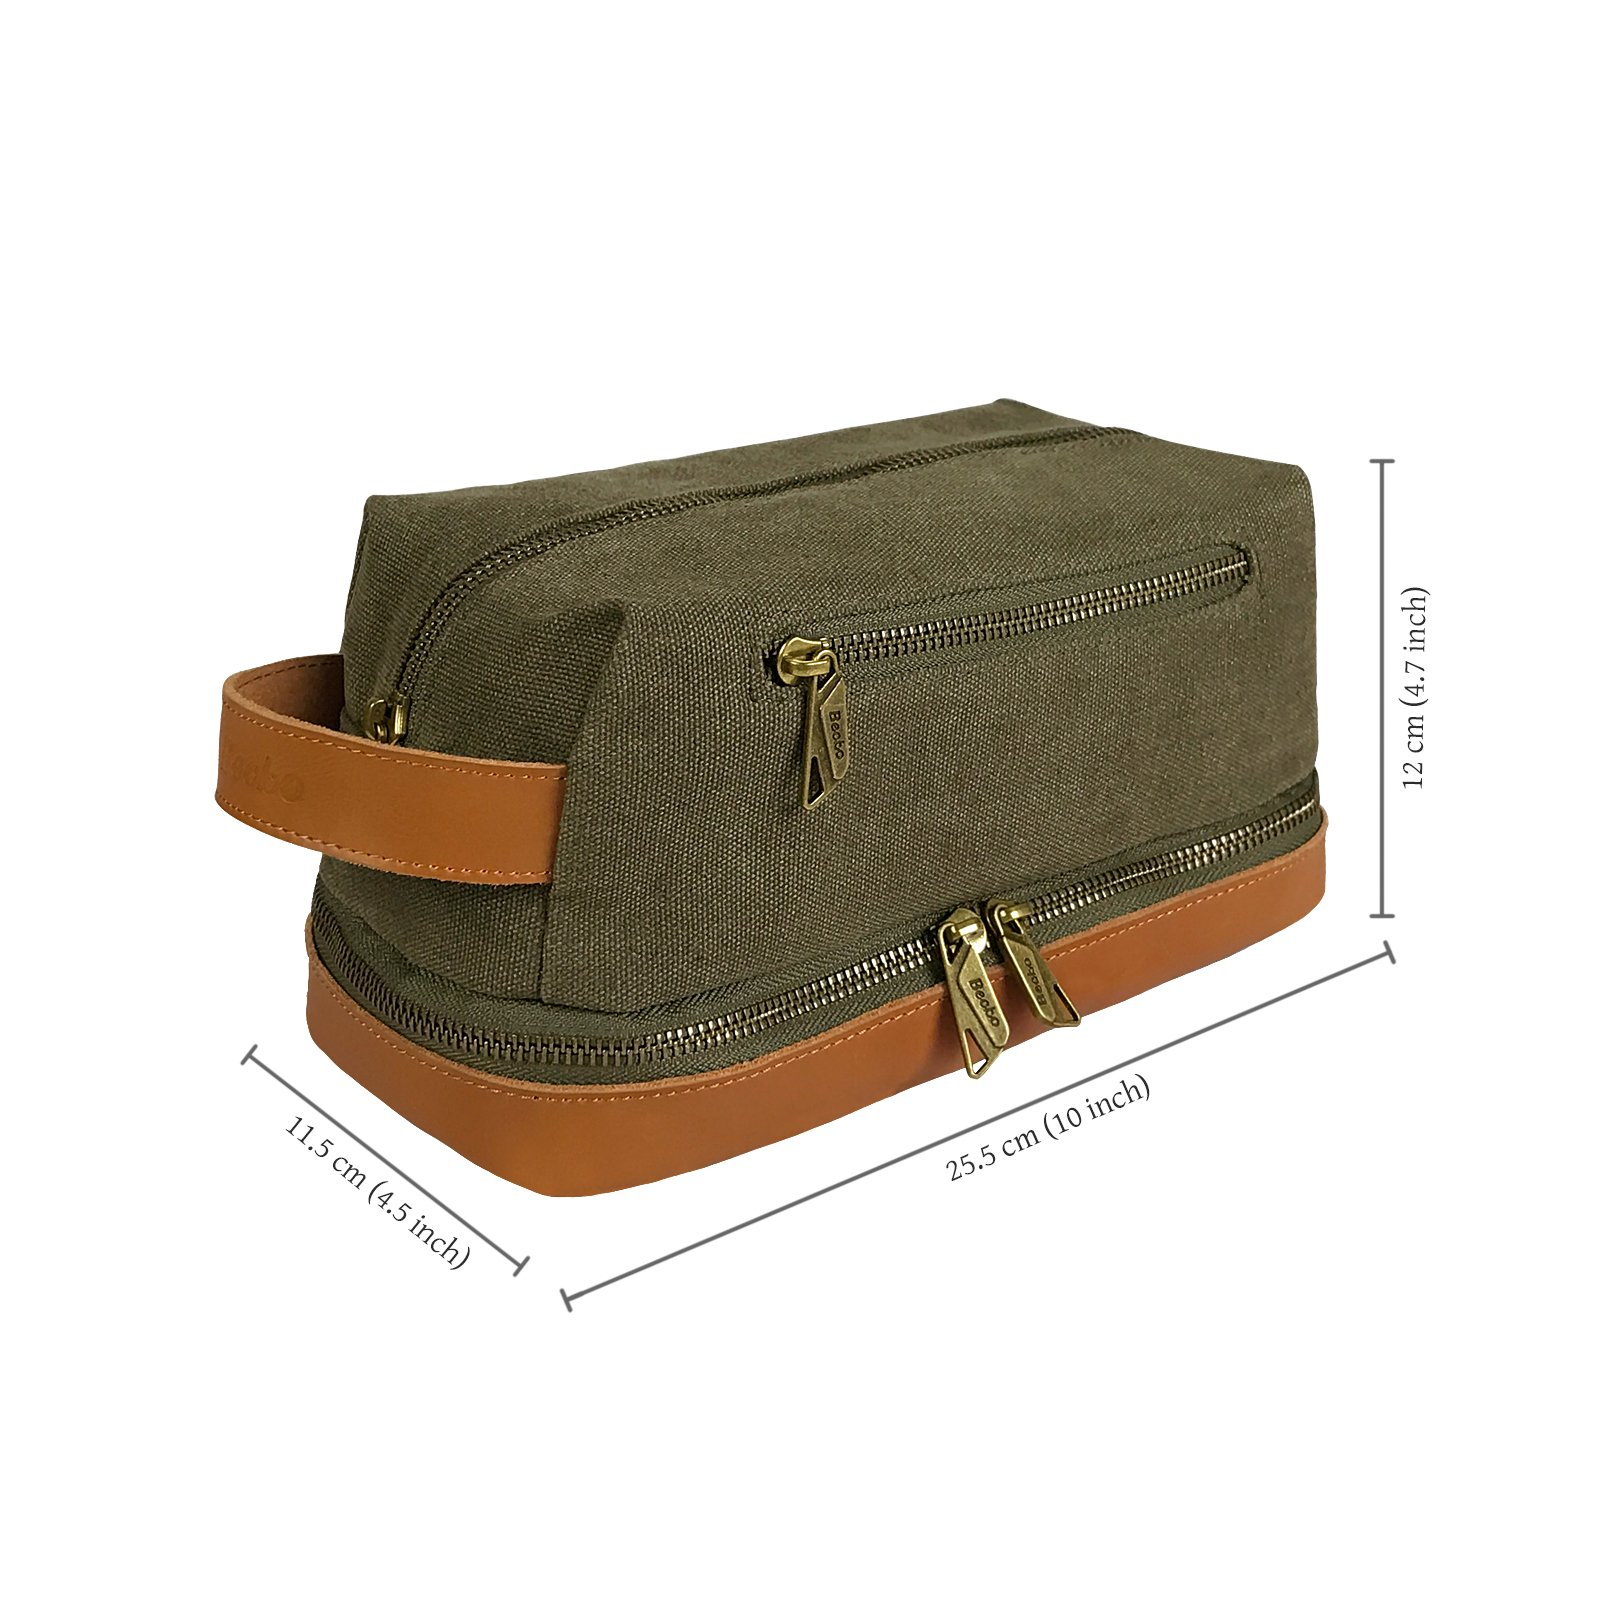 Becko Travel Toiletry Dopp Kit Travel Shaving Grooming Bag with Carry Handle for Men and Women (Green)